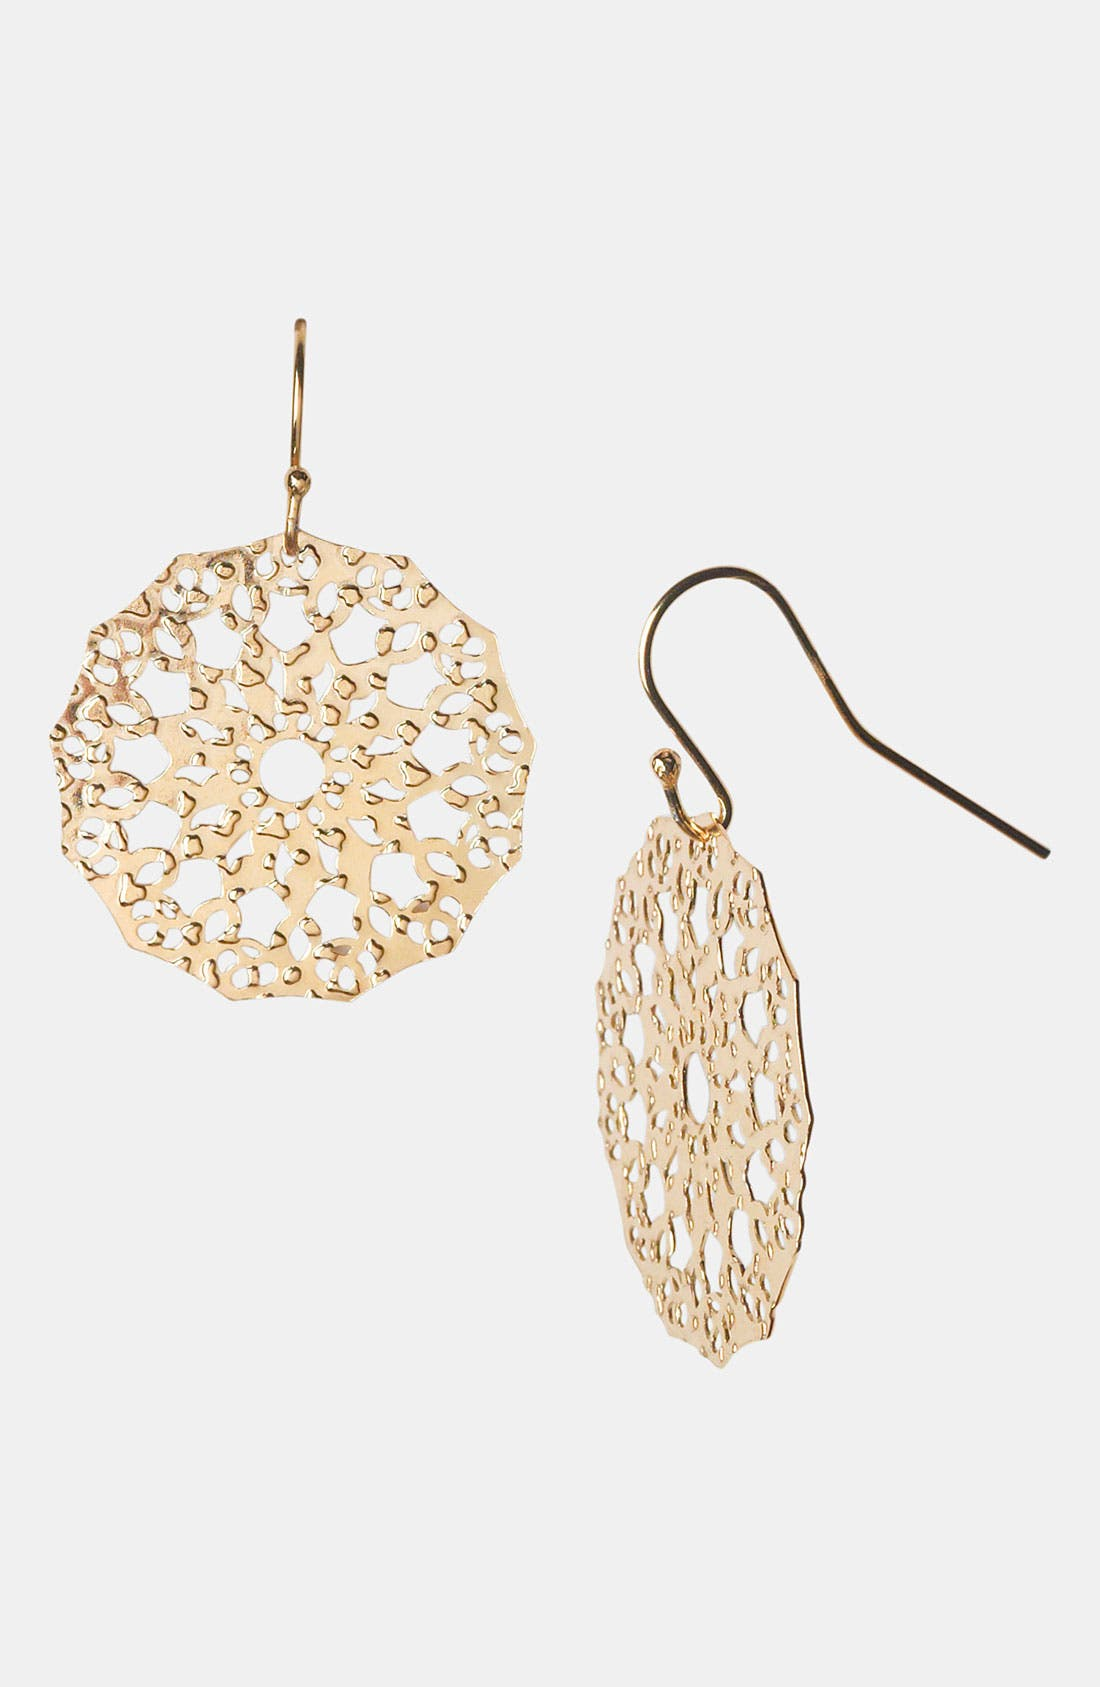 Alternate Image 1 Selected - Argento Vivo 'Mini' Drop Earrings (Nordstrom Exclusive)